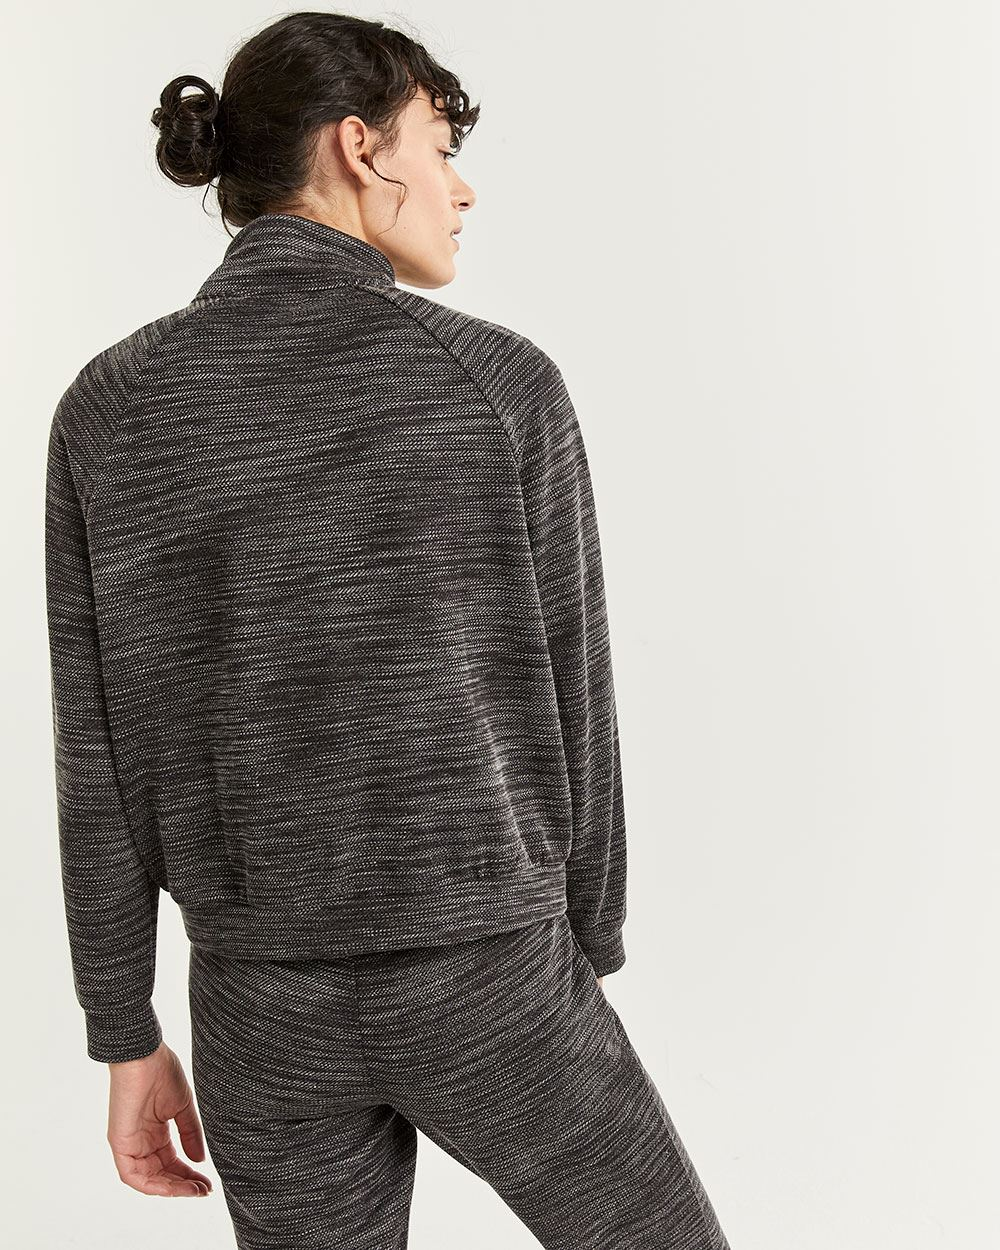 Mock Neck Sweatshirt with Kangaroo Pocket Hyba